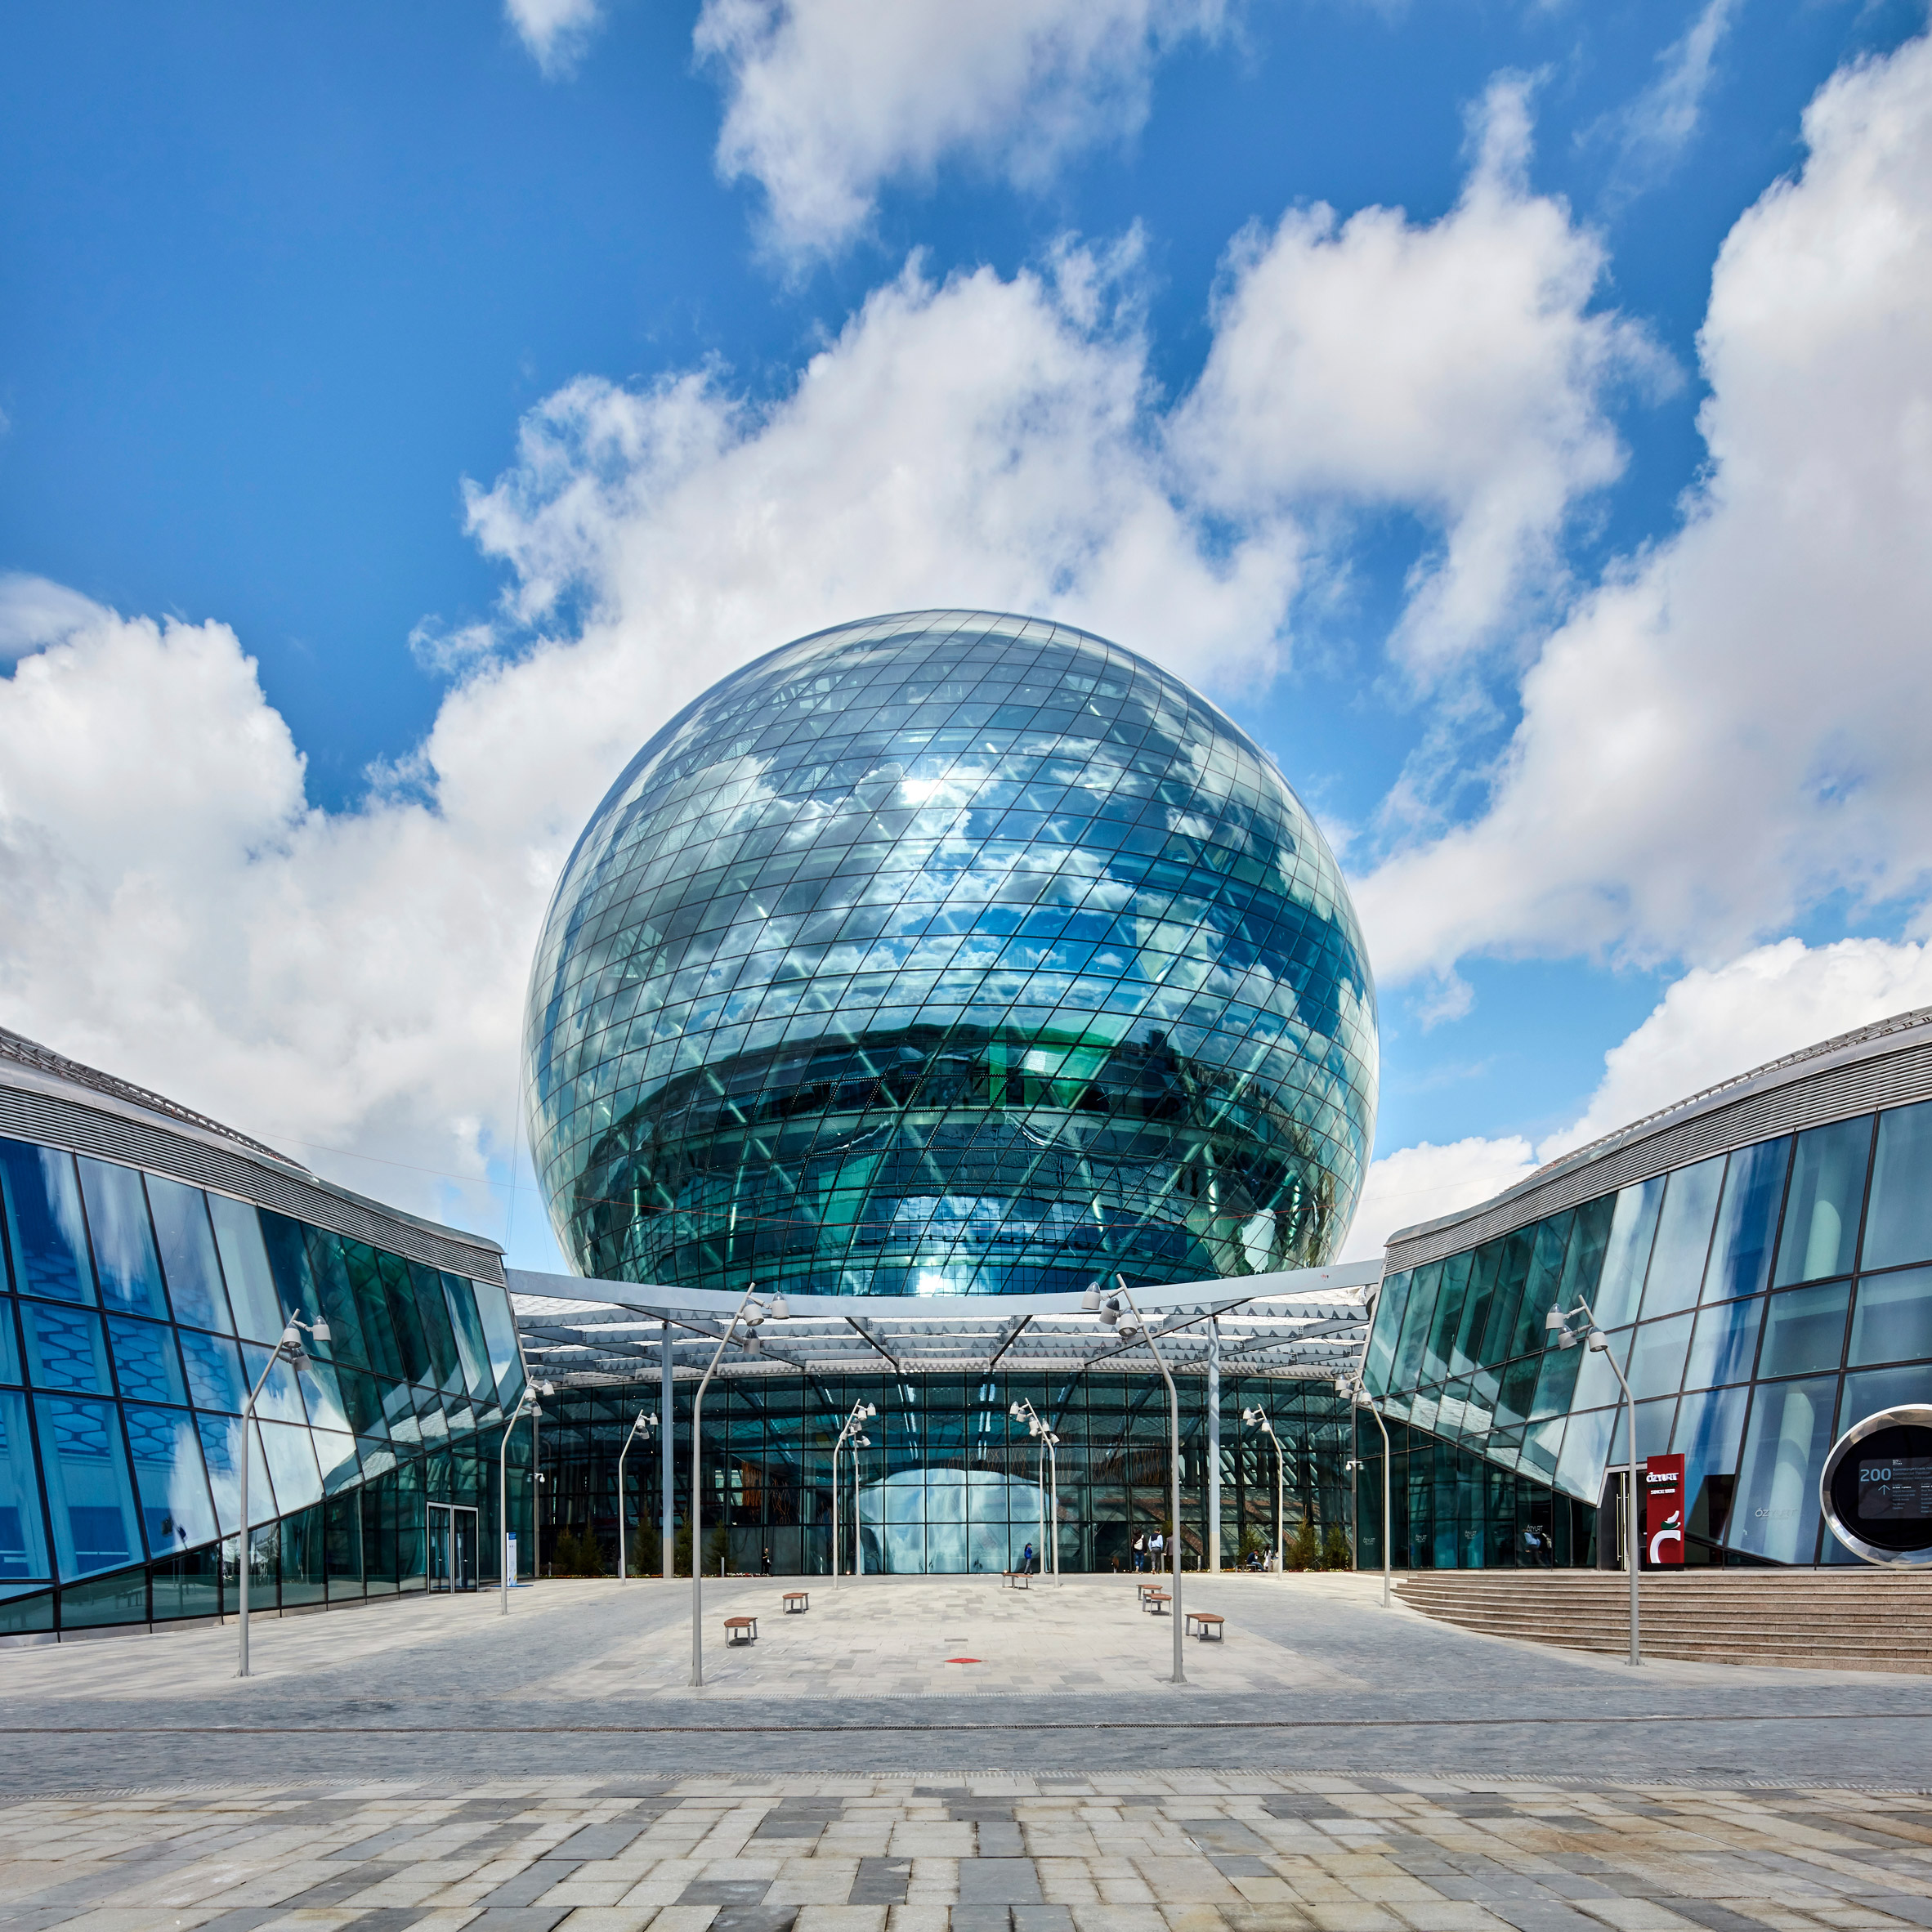 Spherical architecture: Kazakhstan Pavilion by Adrian Smith + Gordon Gill